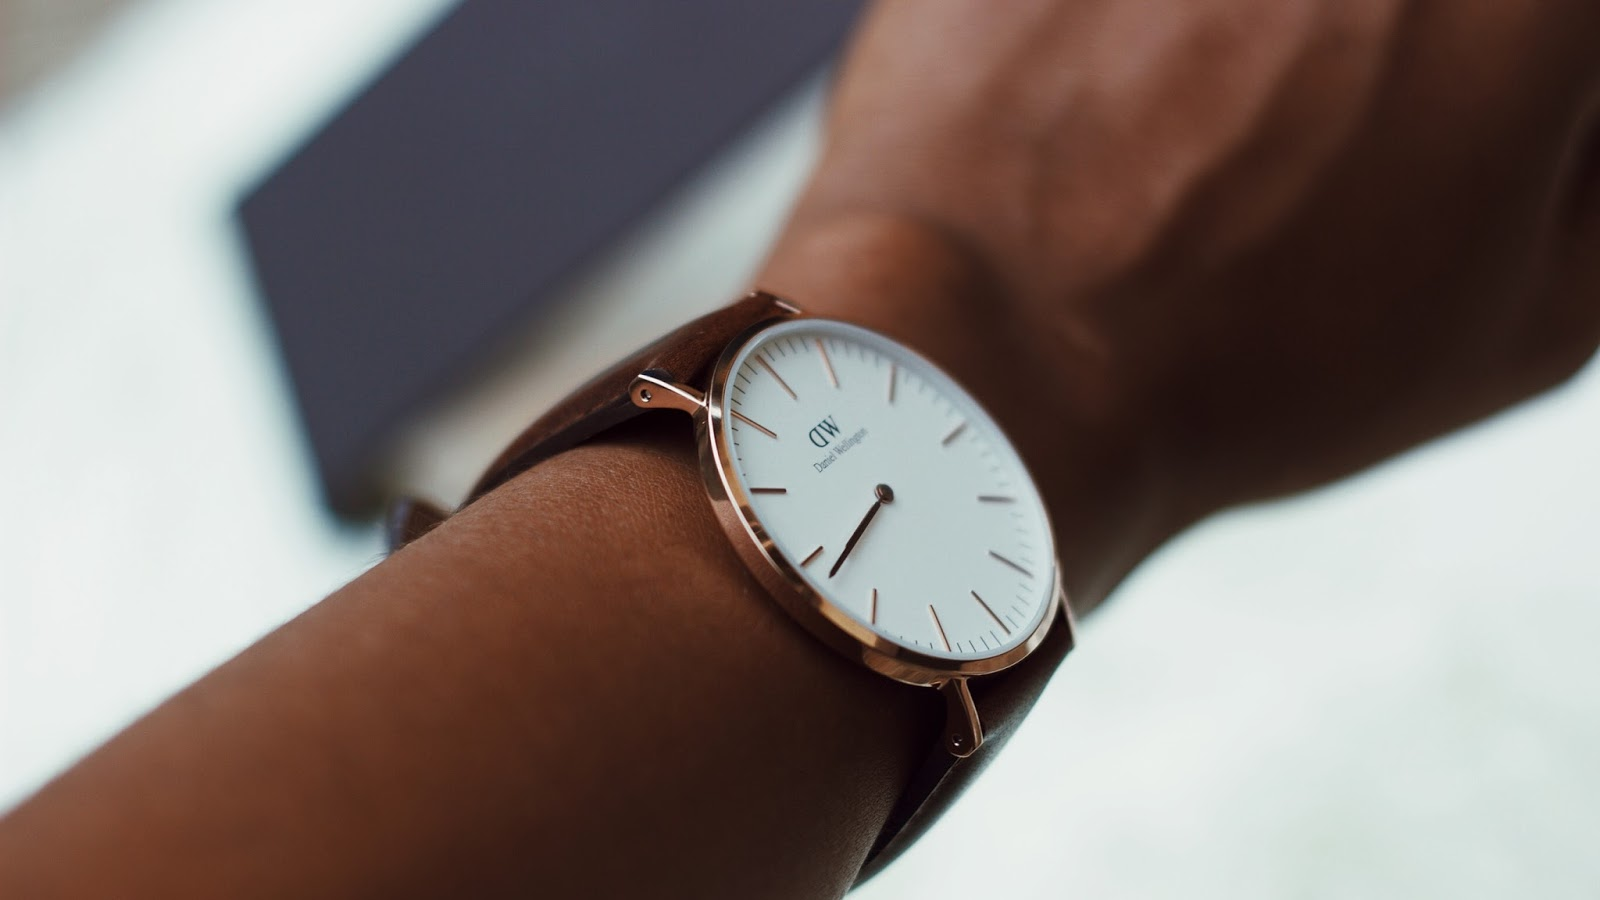 NEW IN (DANIEL WELLINGTON)